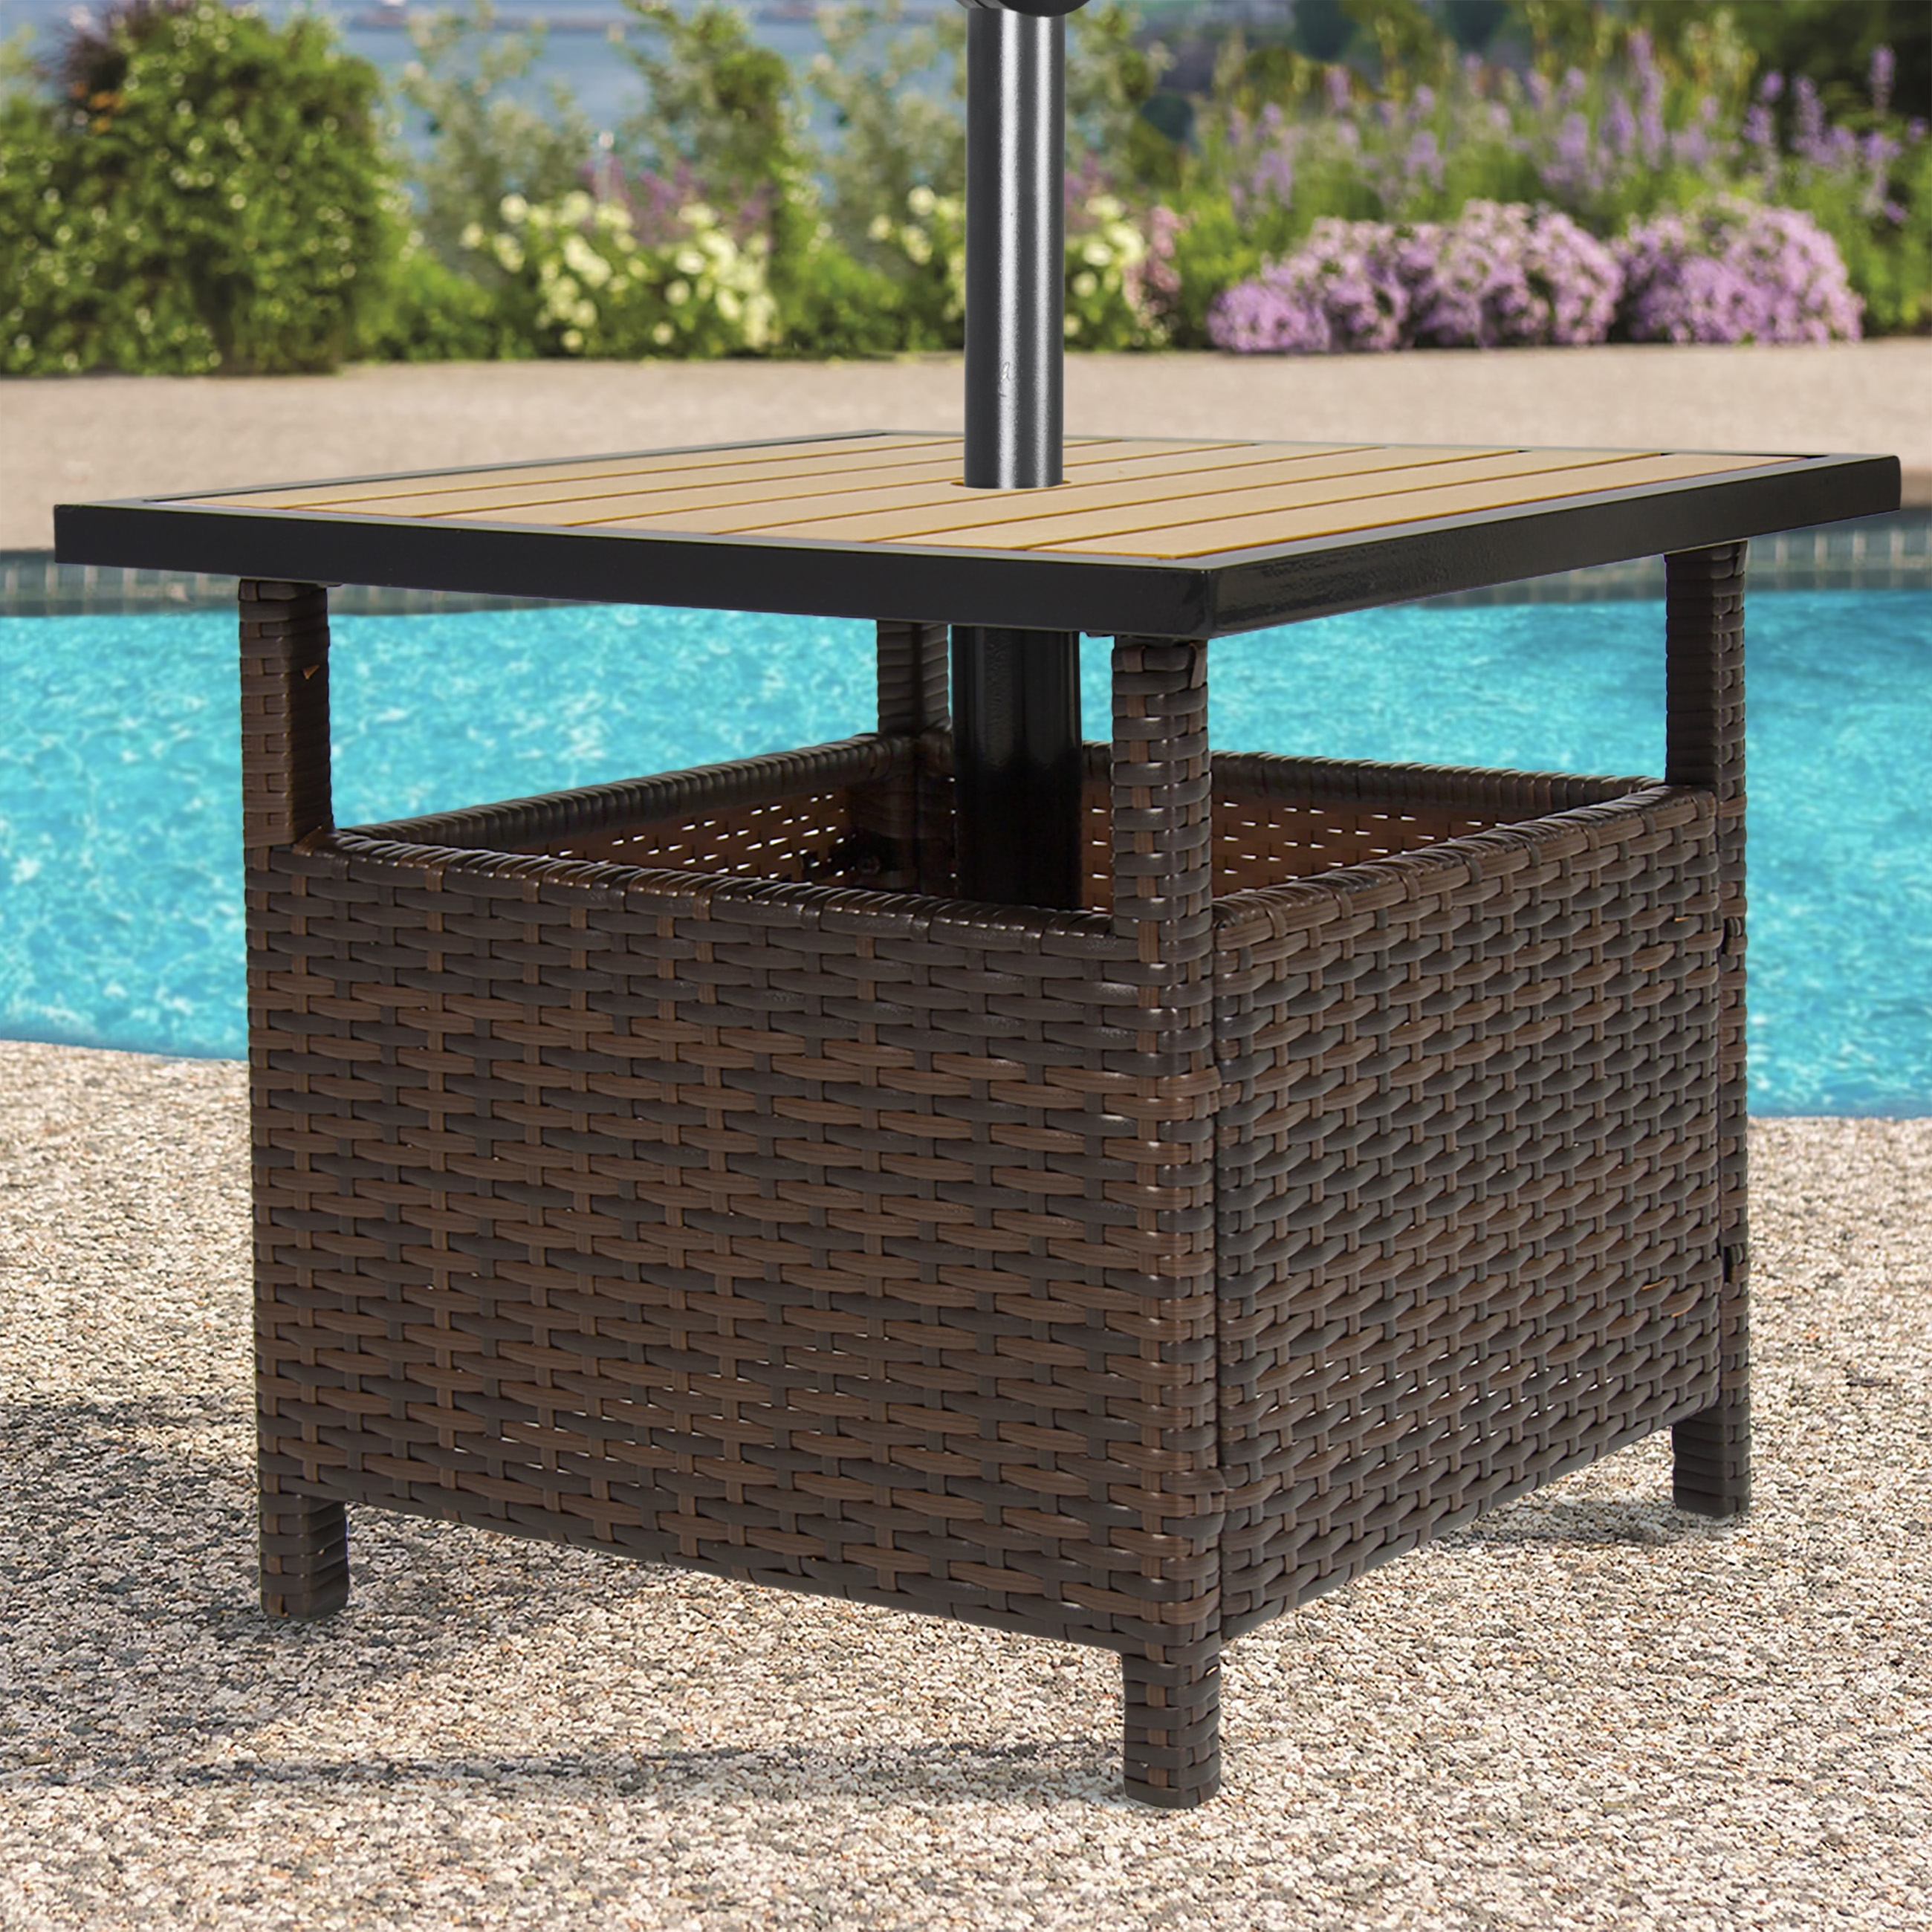 Patio Umbrella Side Tables In Well Known Best Choice Products Outdoor Furniture Wicker Rattan Patio Umbrella (View 3 of 20)